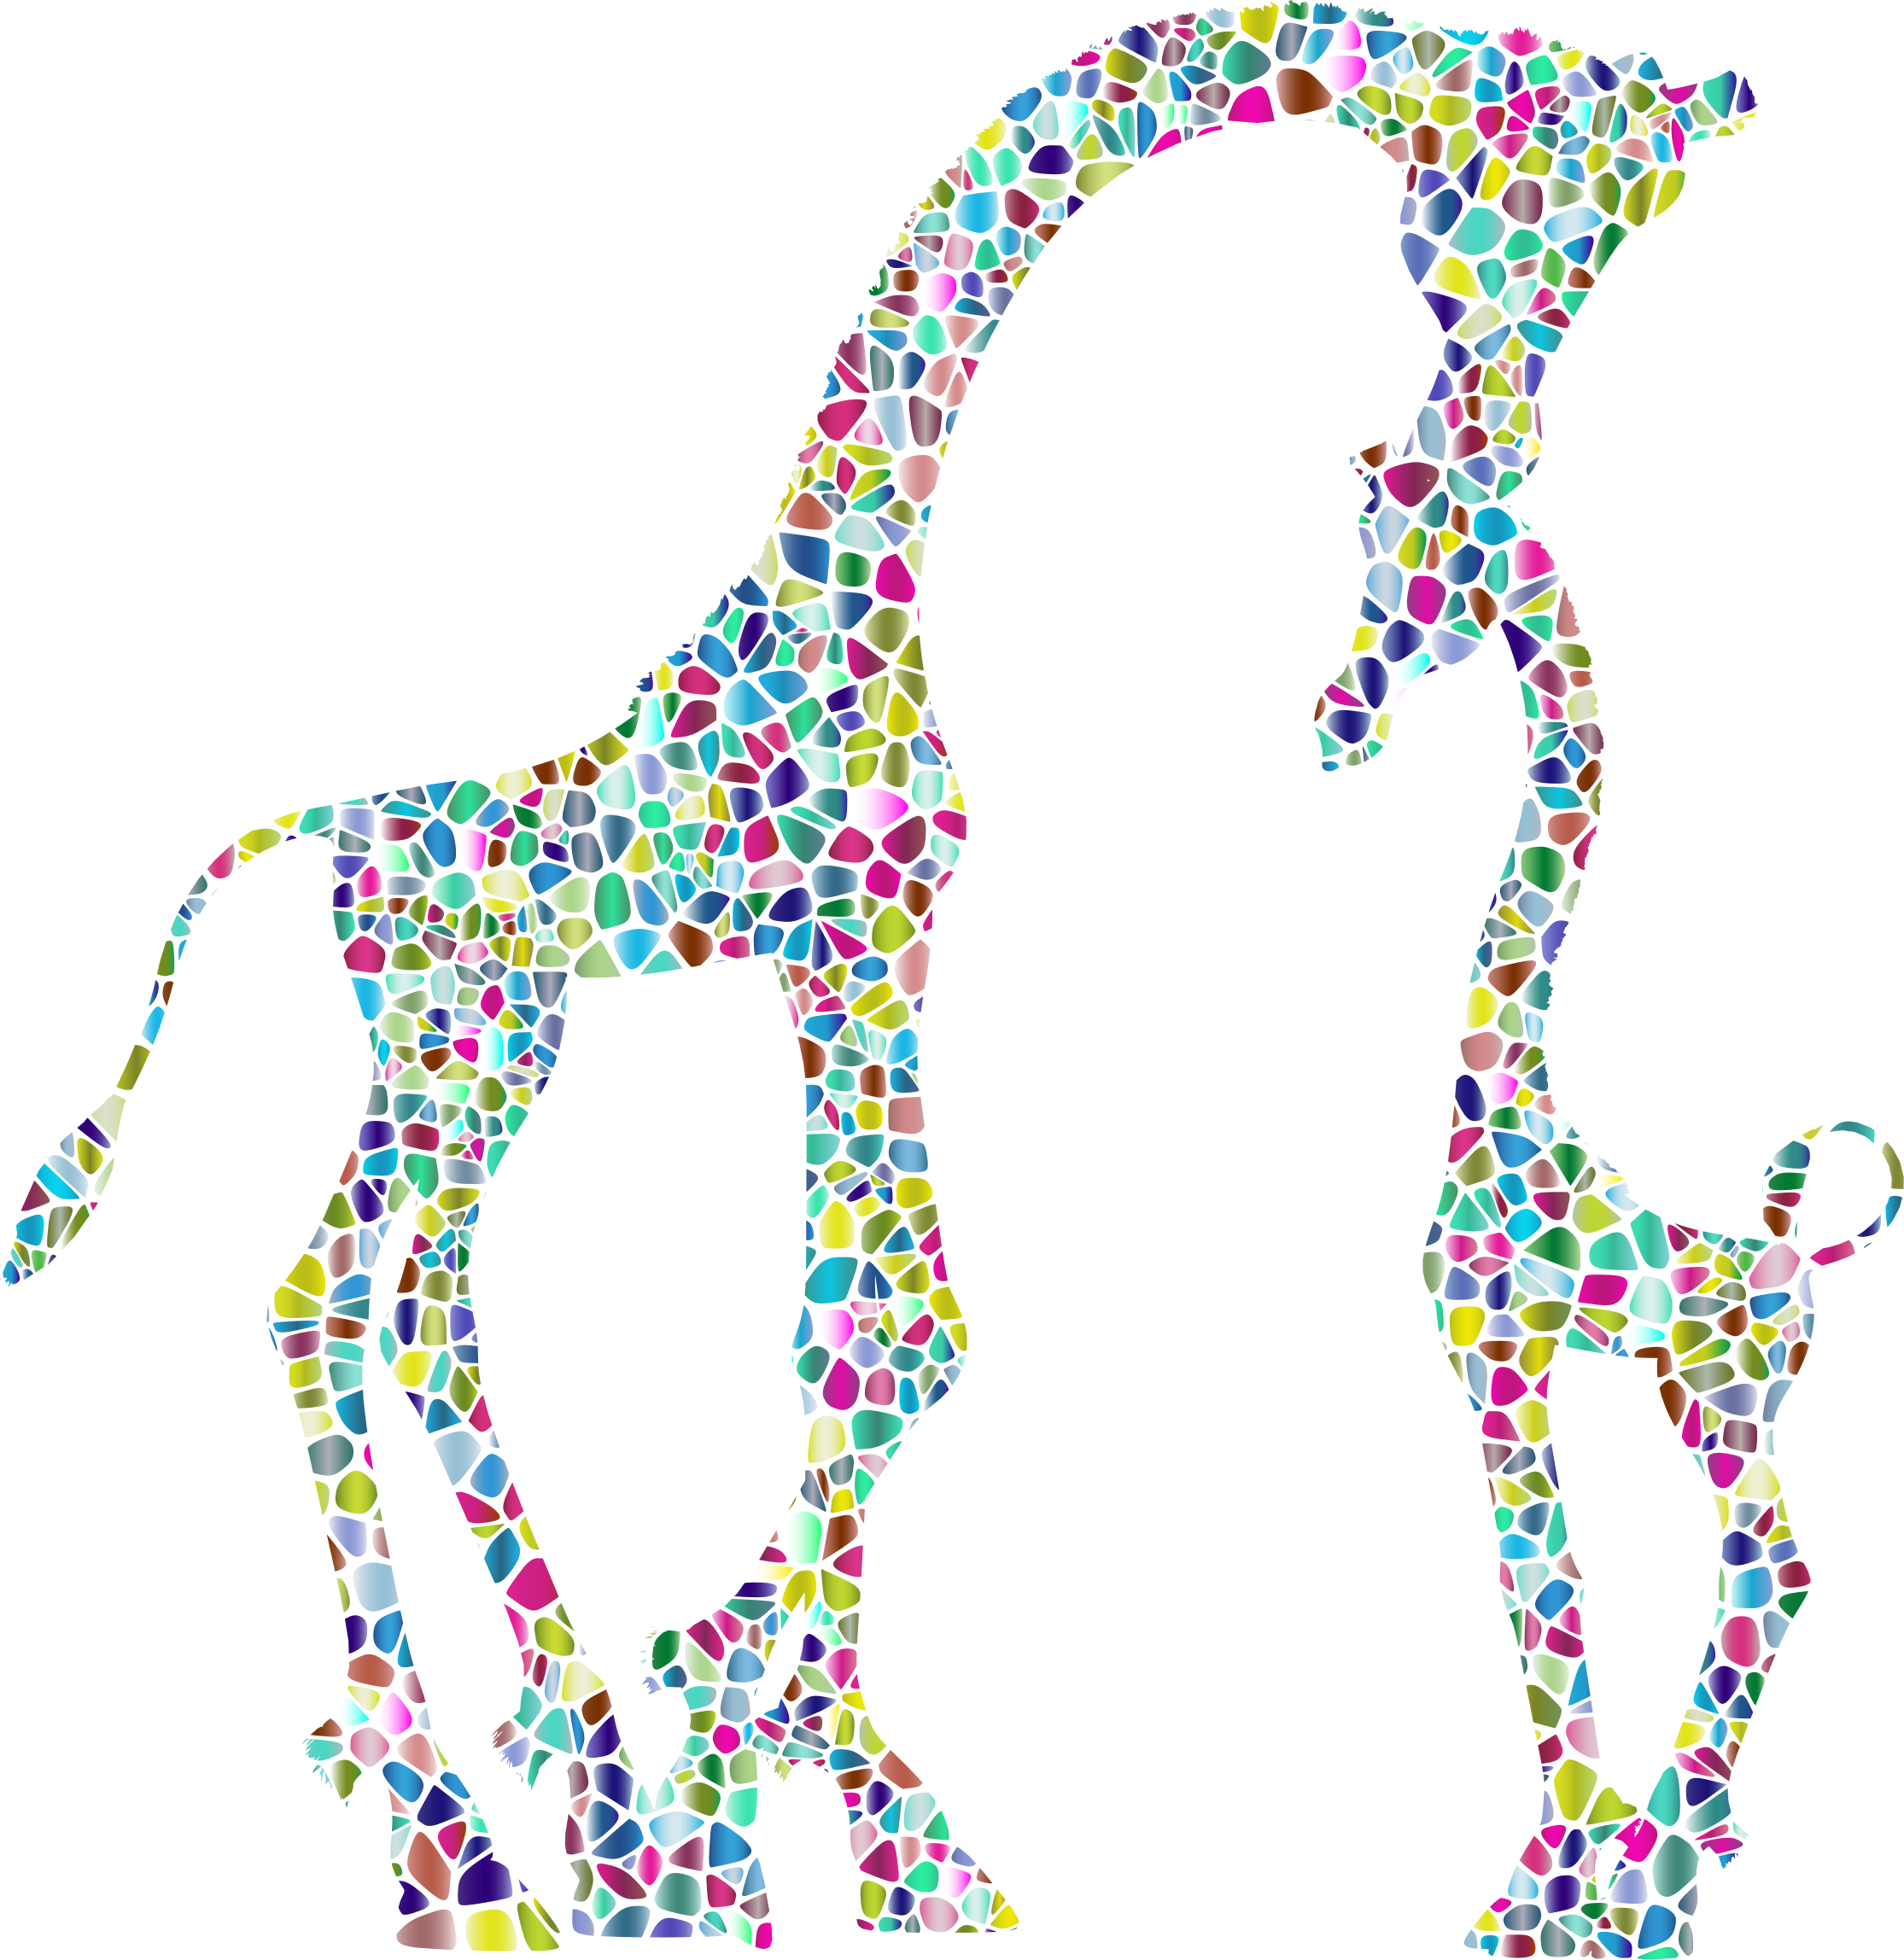 Polyprismatic Tiled Mother And Child Giraffe Silhouette Variation 2 No Background by GDJ